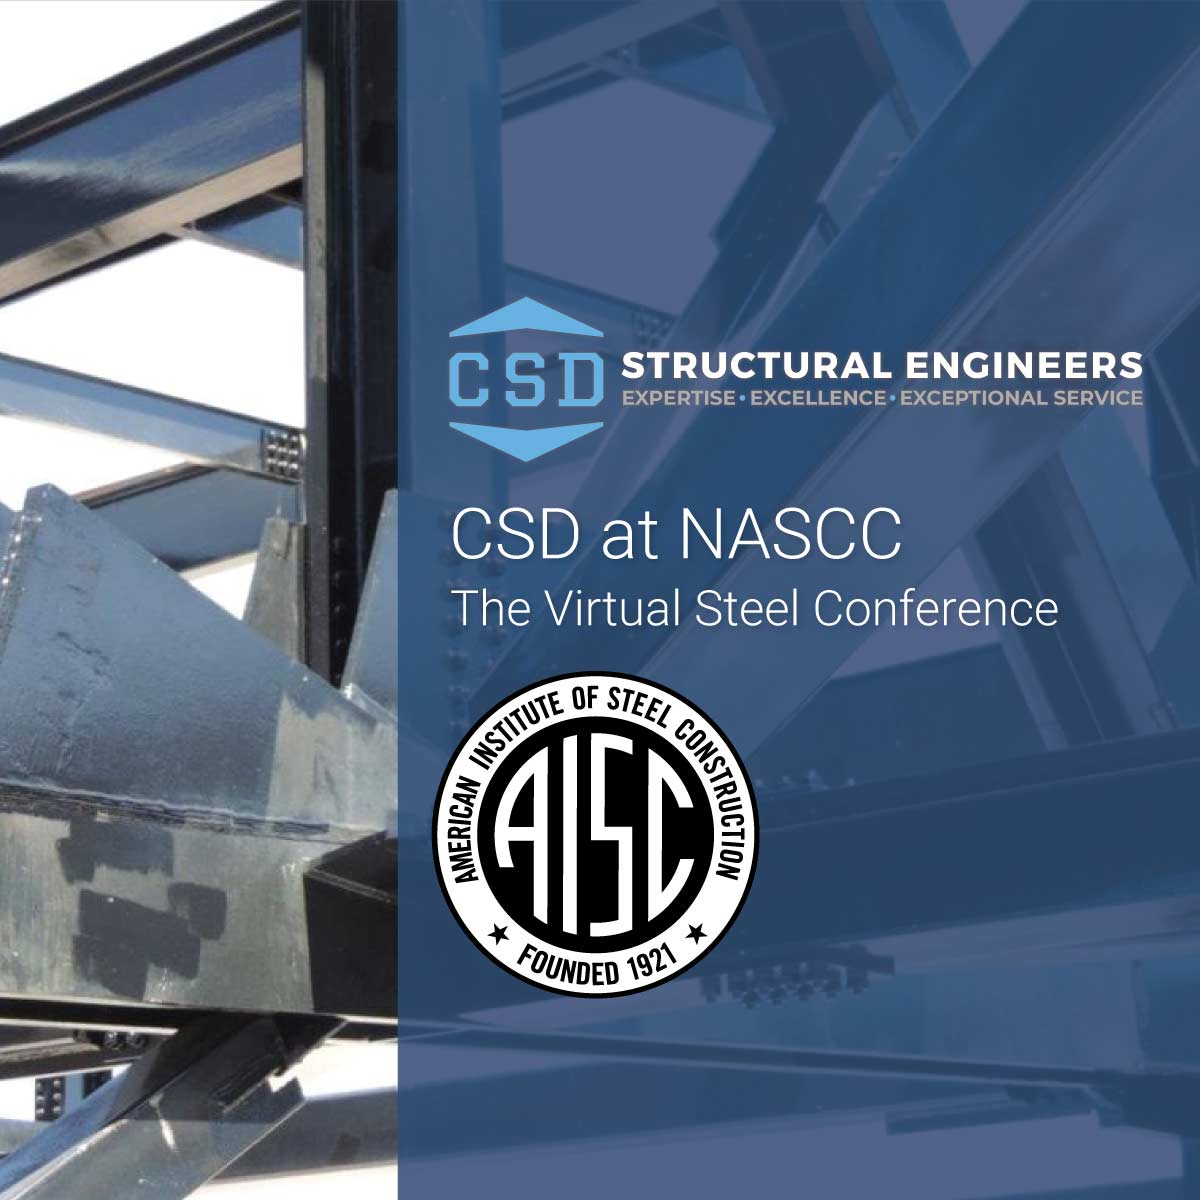 CSD at 2021 NASCC: The Virtual Steel Conference - CSD Structural Engineers